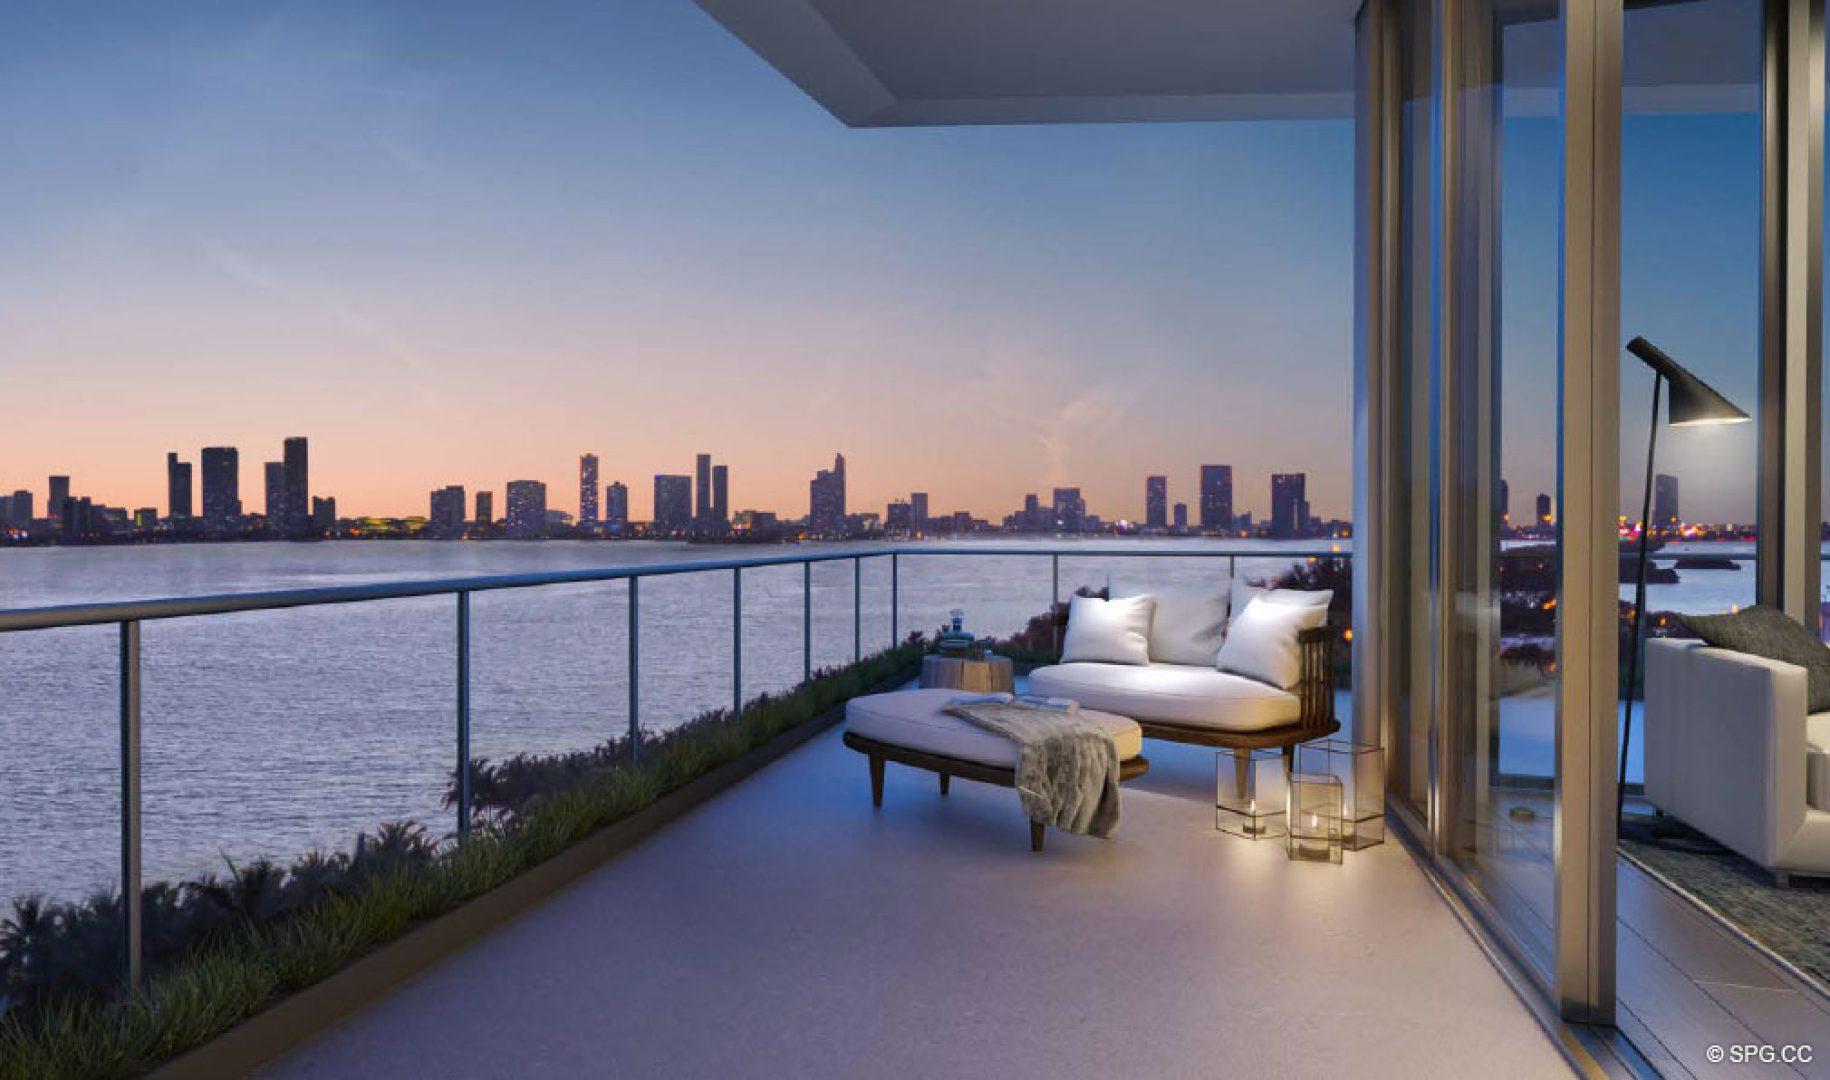 Spectacular Terrace Views from 3900 Alton, Luxury Waterfront Condos in Miami Beach, Florida 33140